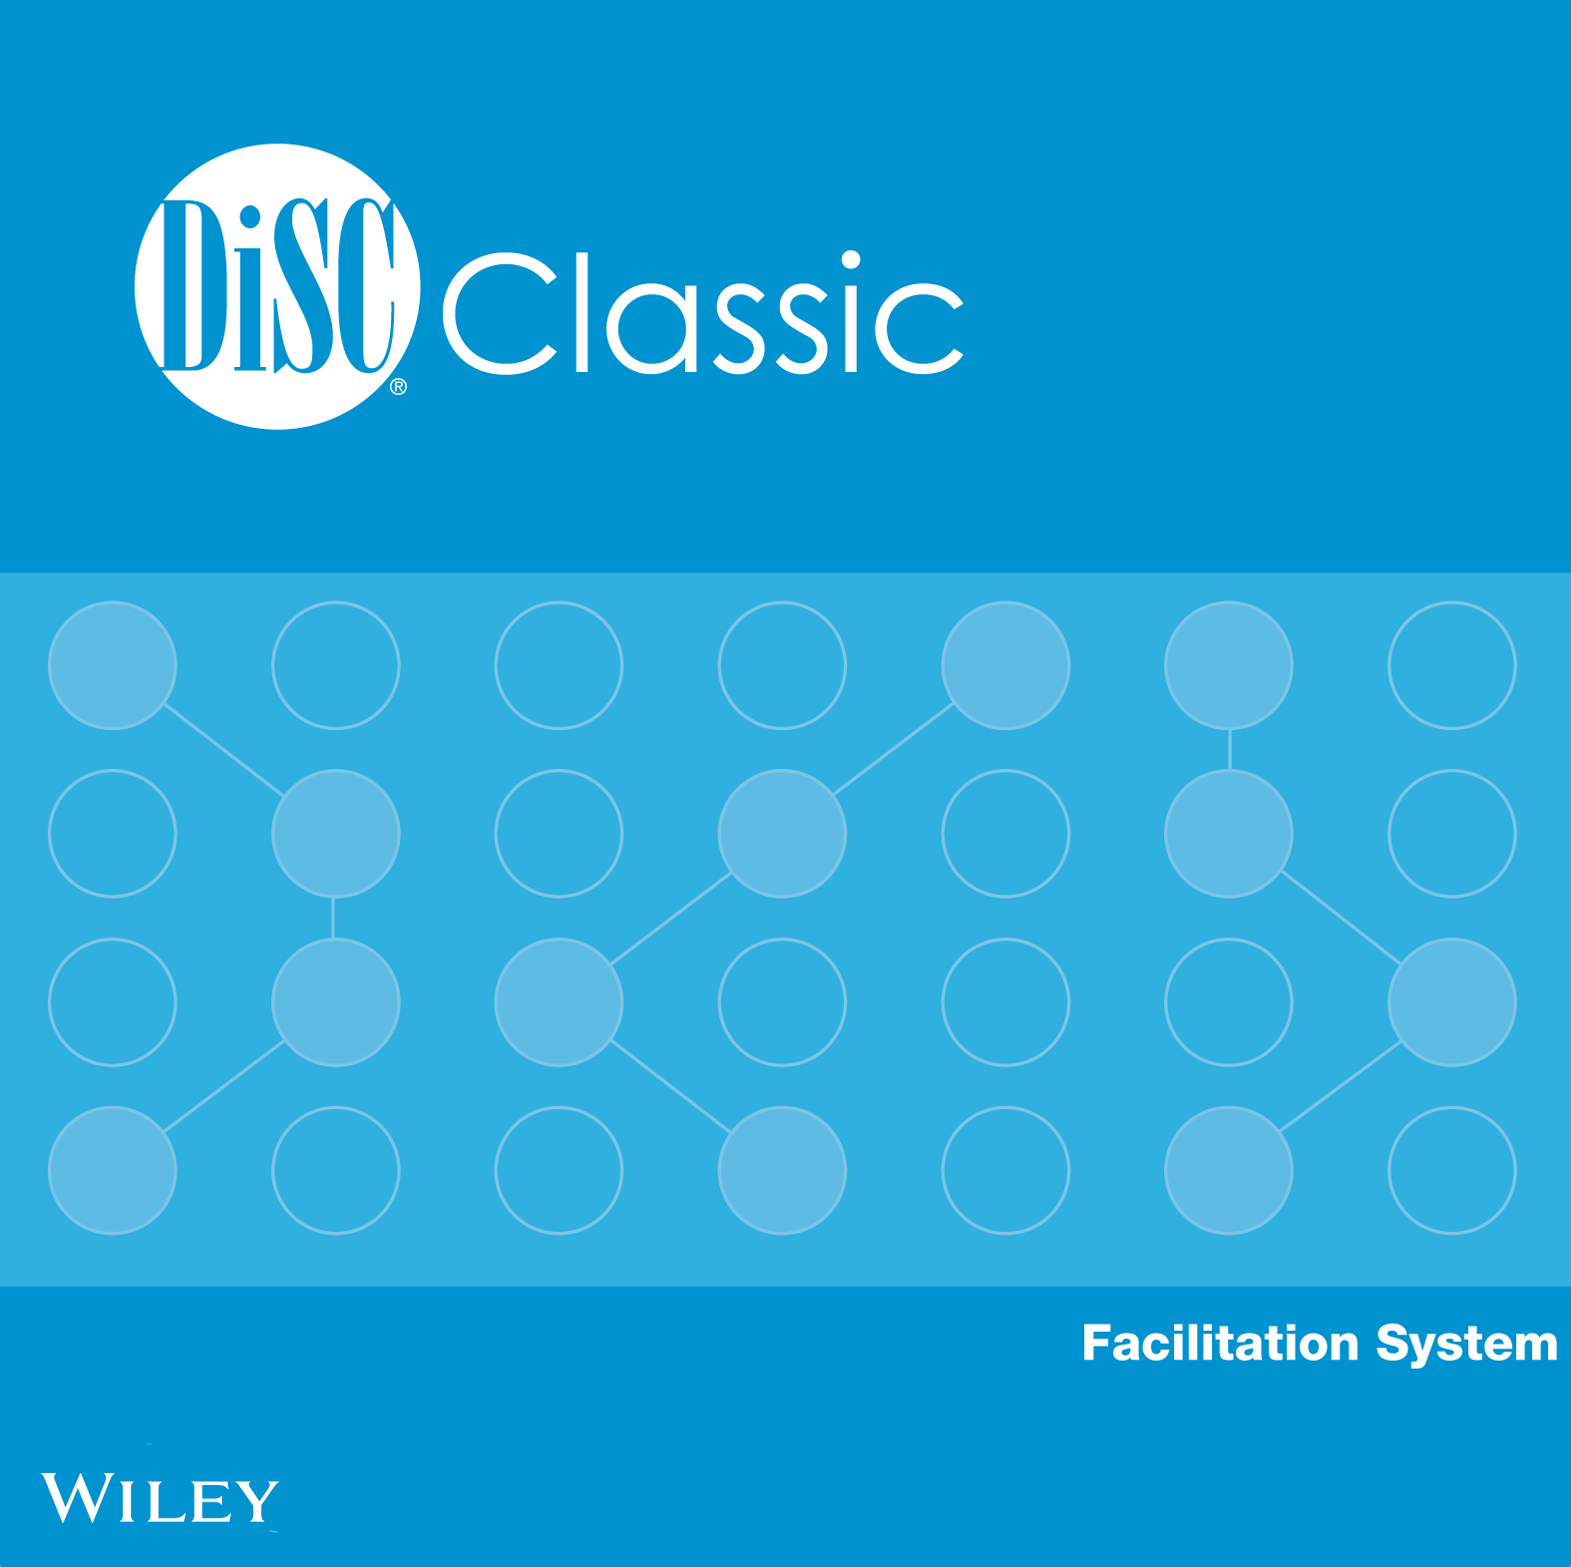 DiSC Classic Facilitator System Product Image